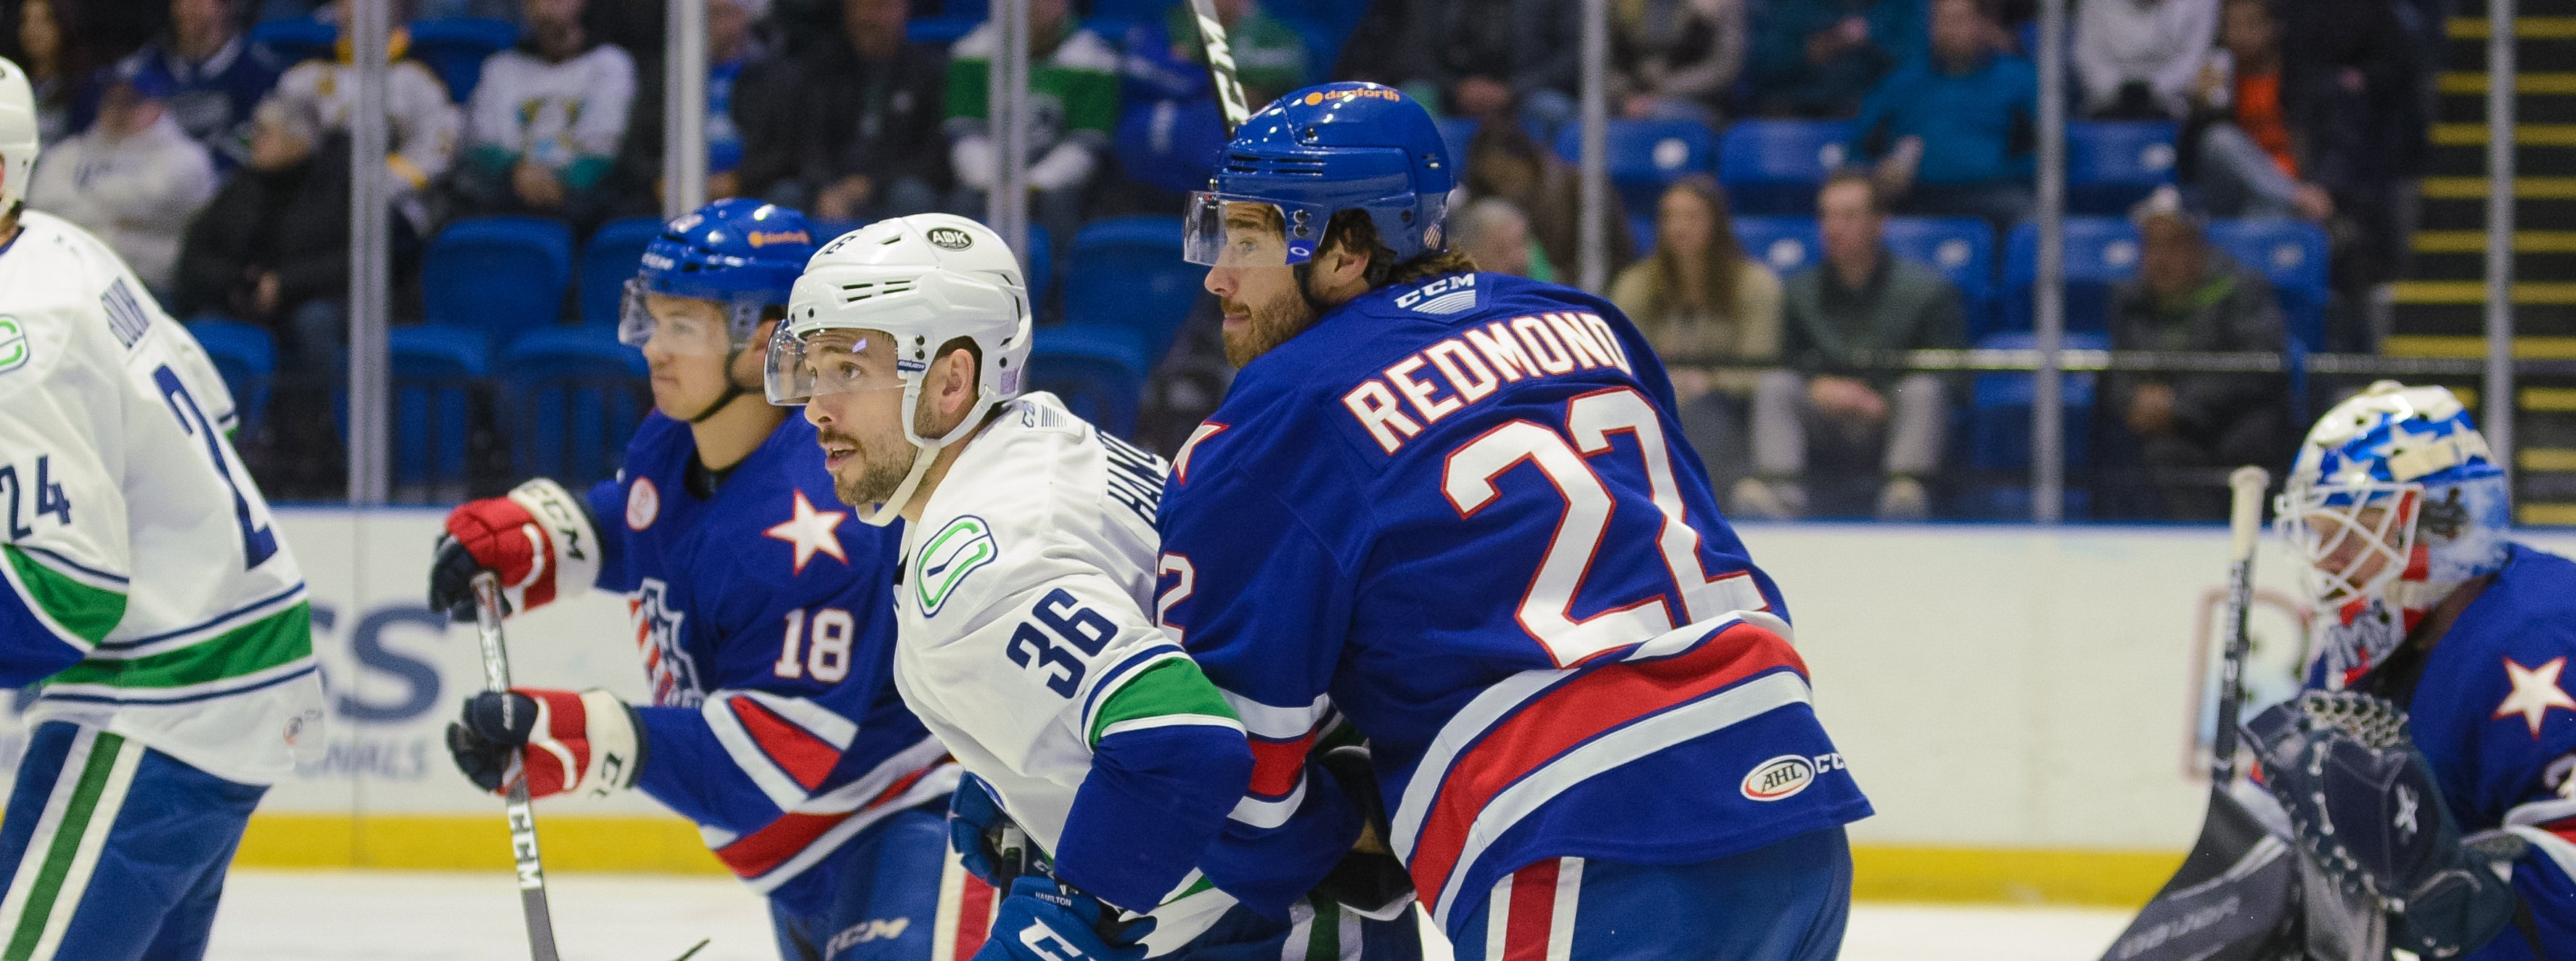 FOUR UNANSWERED GOALS SINK COMETS IN LOSS TO AMERKS